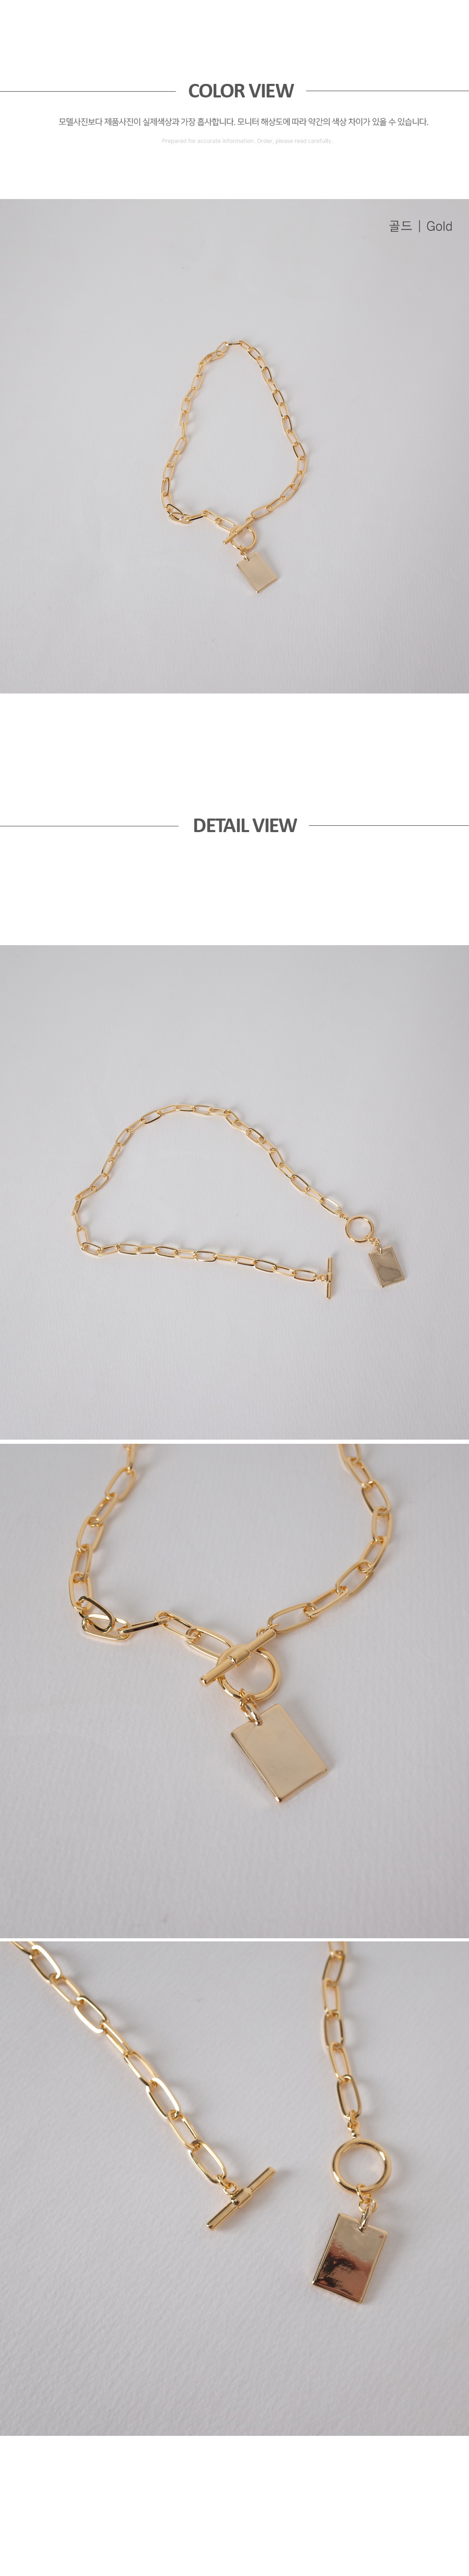 Brighten the bling gold chain necklace